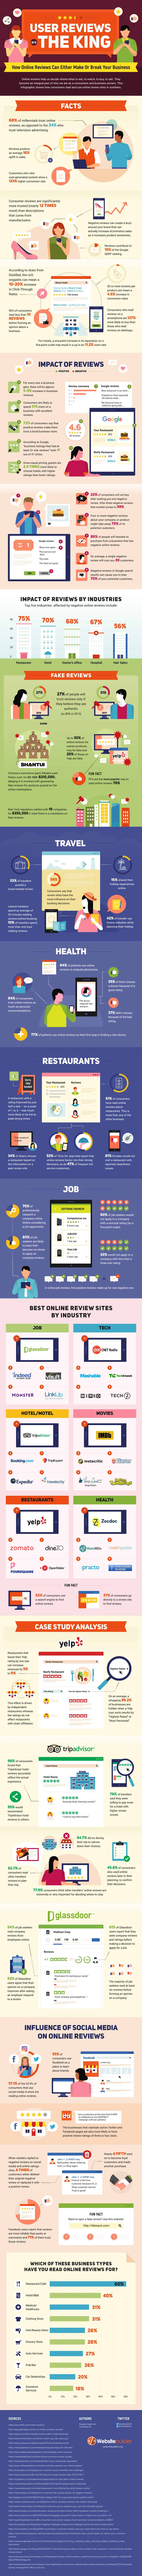 onlinereview-infographic-by-websitebuilder.org_-1